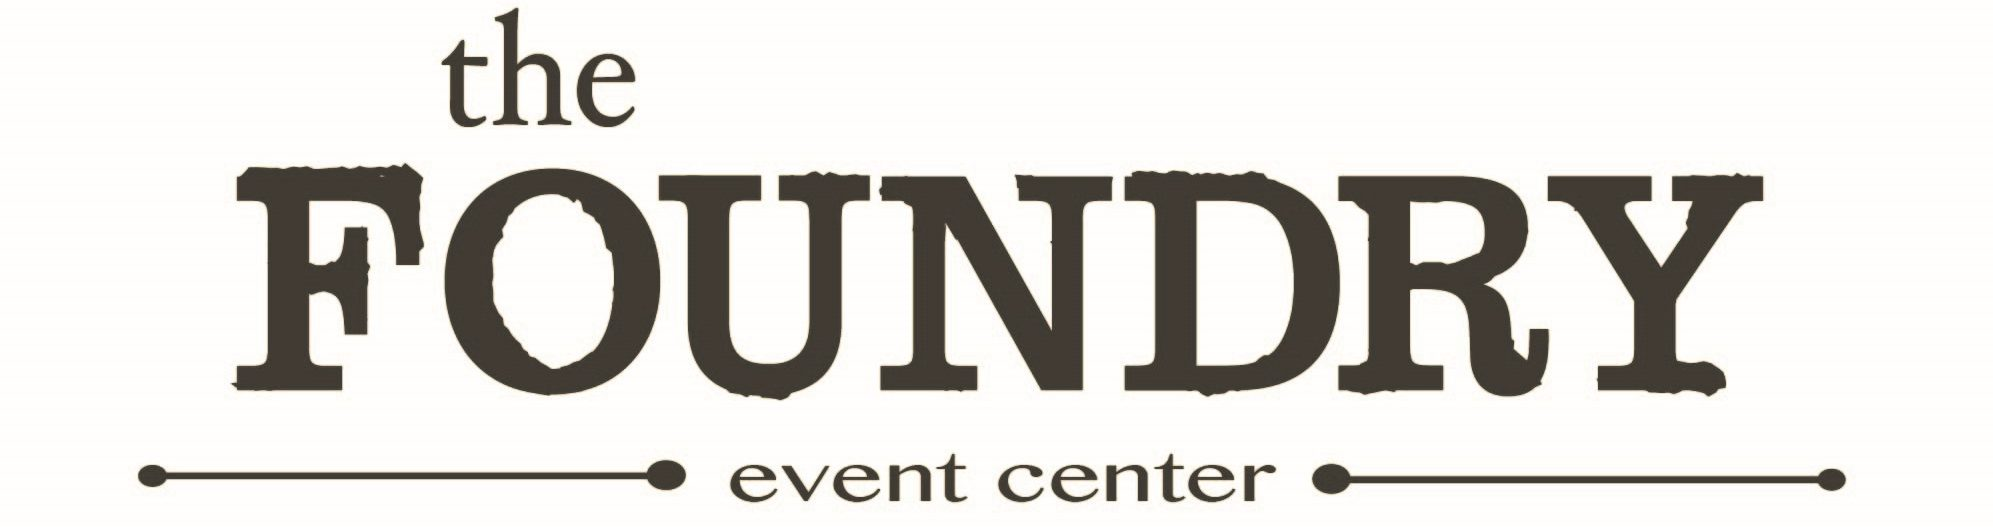 The Foundry Event Center